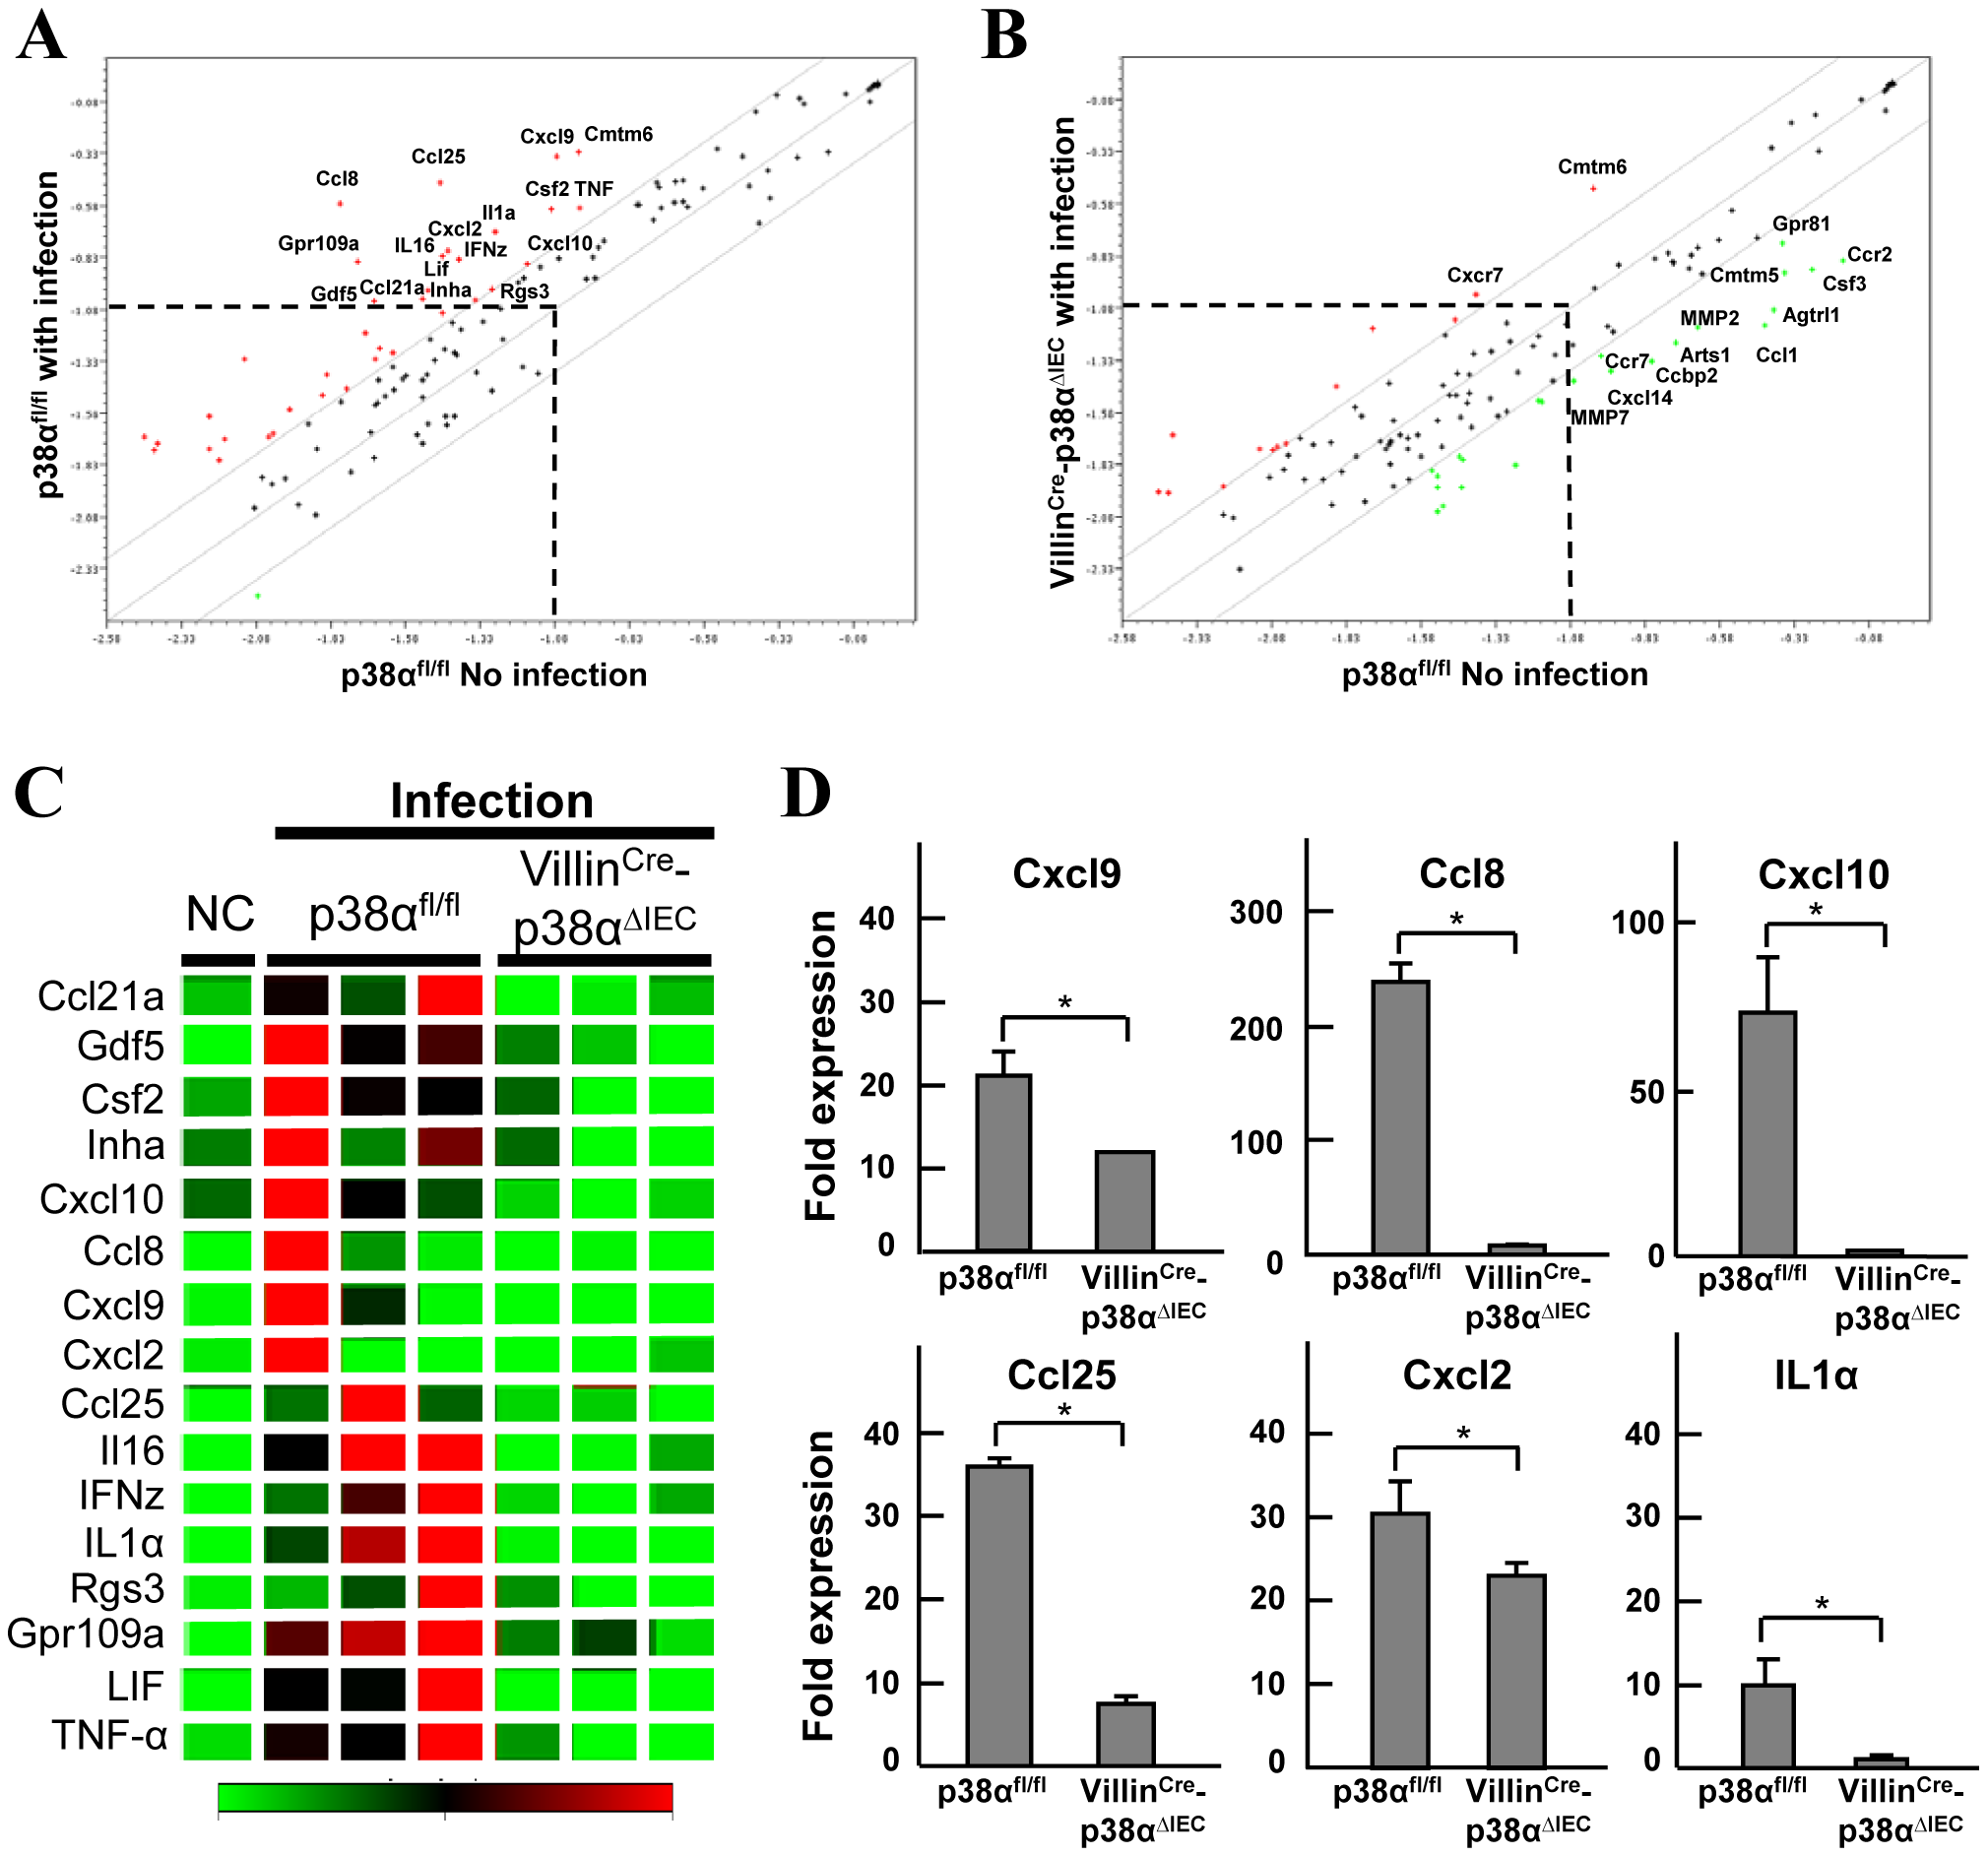 p38α in intestinal epithelial cells is required for chemokine expression to recruit immune cells into the colon mucosa after <i>C. rodentium</i> infection.